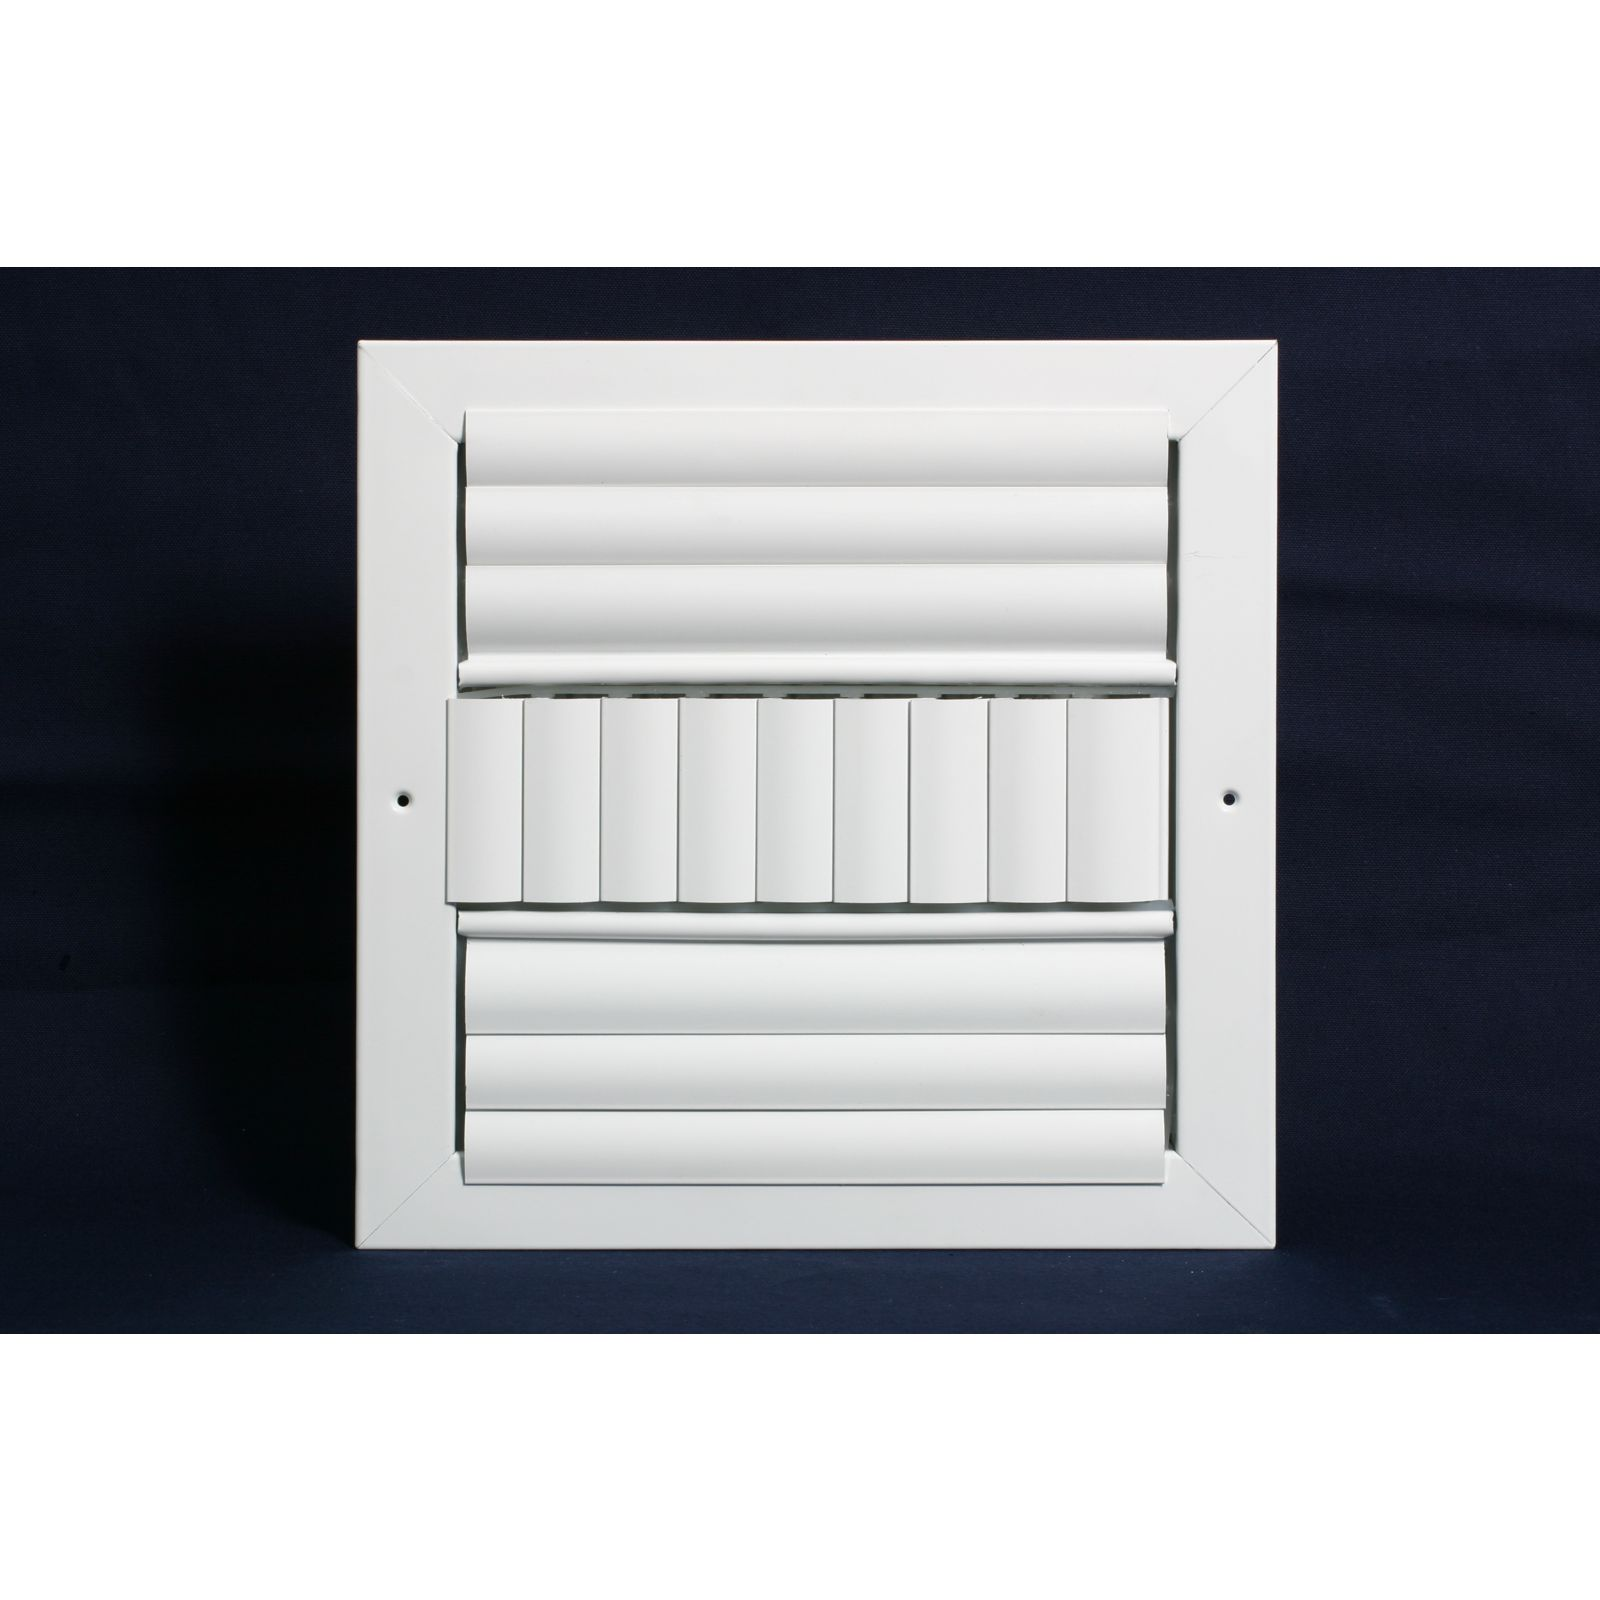 "Grille Tech CL3M1006 - Aluminum Ceiling 3Way Deflection Supply, Multi-shutter 10"" X 6"" White"